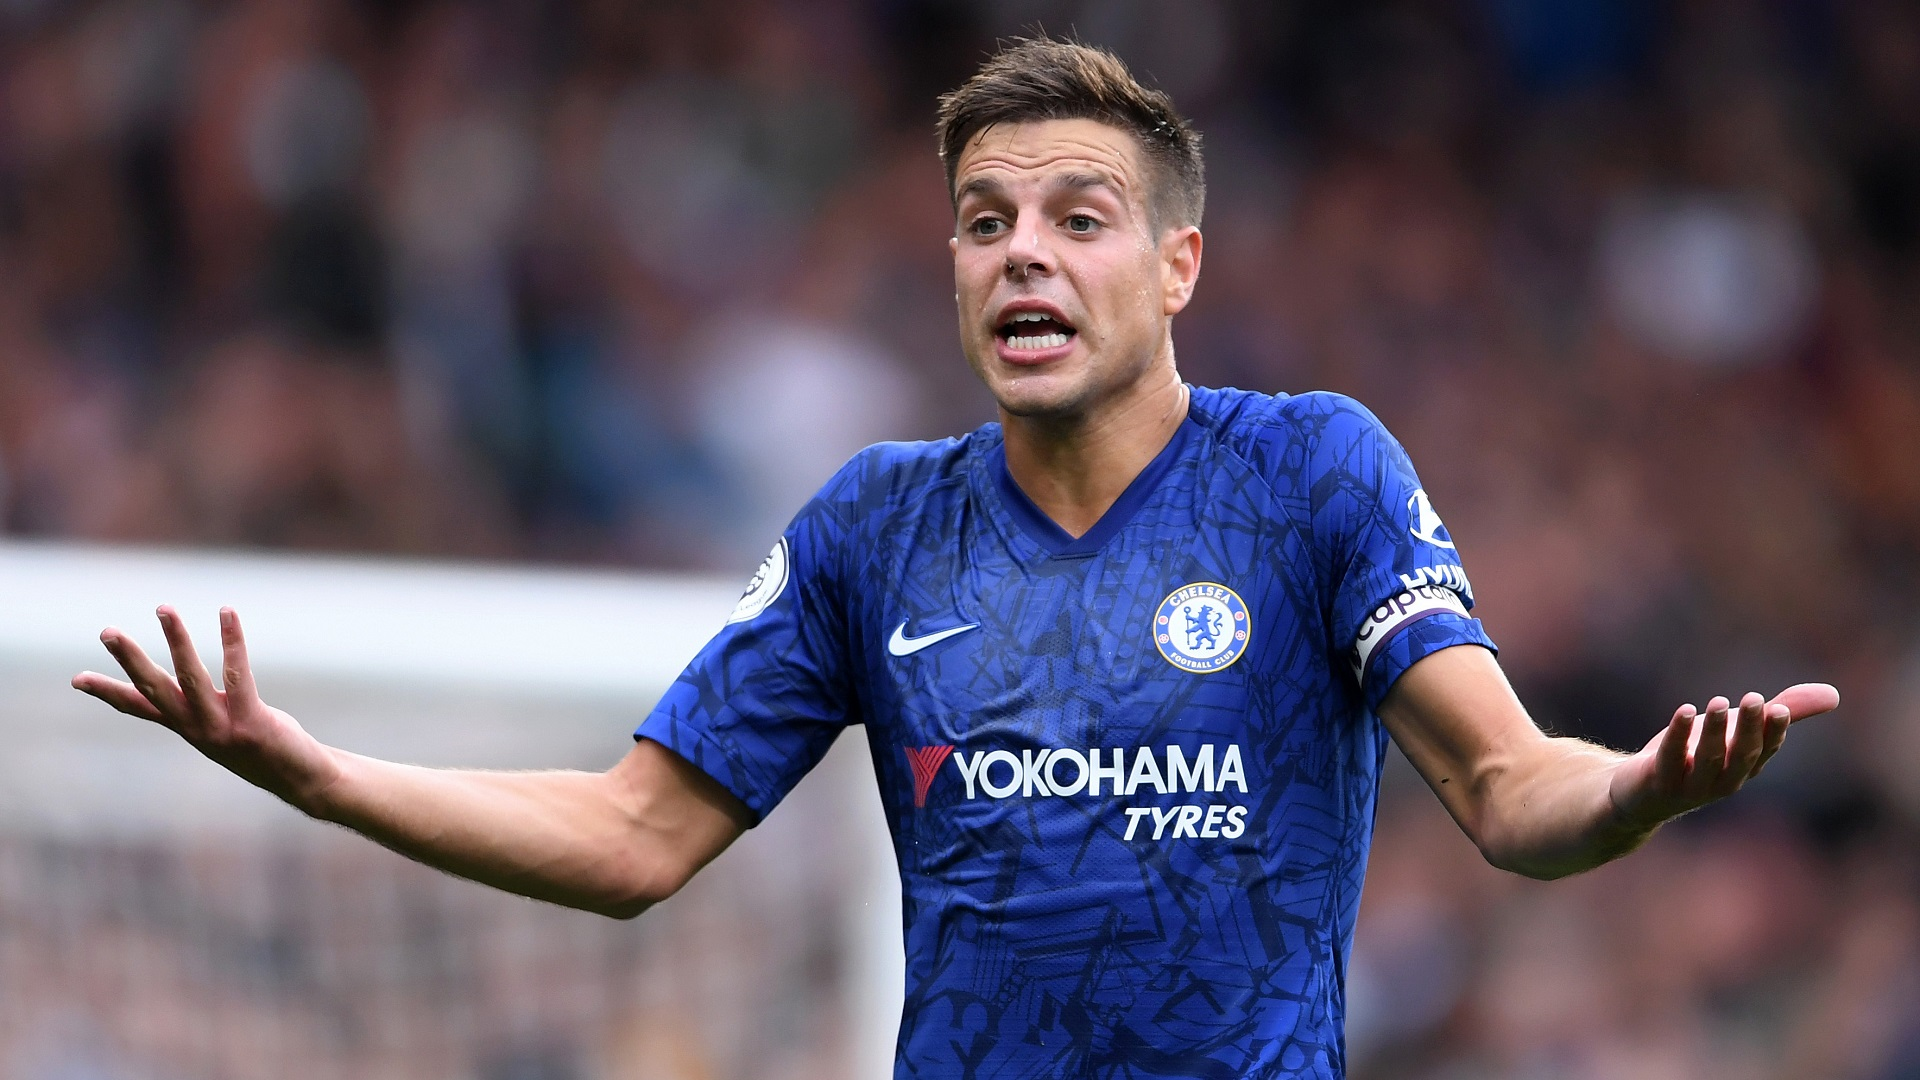 'Why not use it right?' - Azpilicueta calls for VAR reform ...